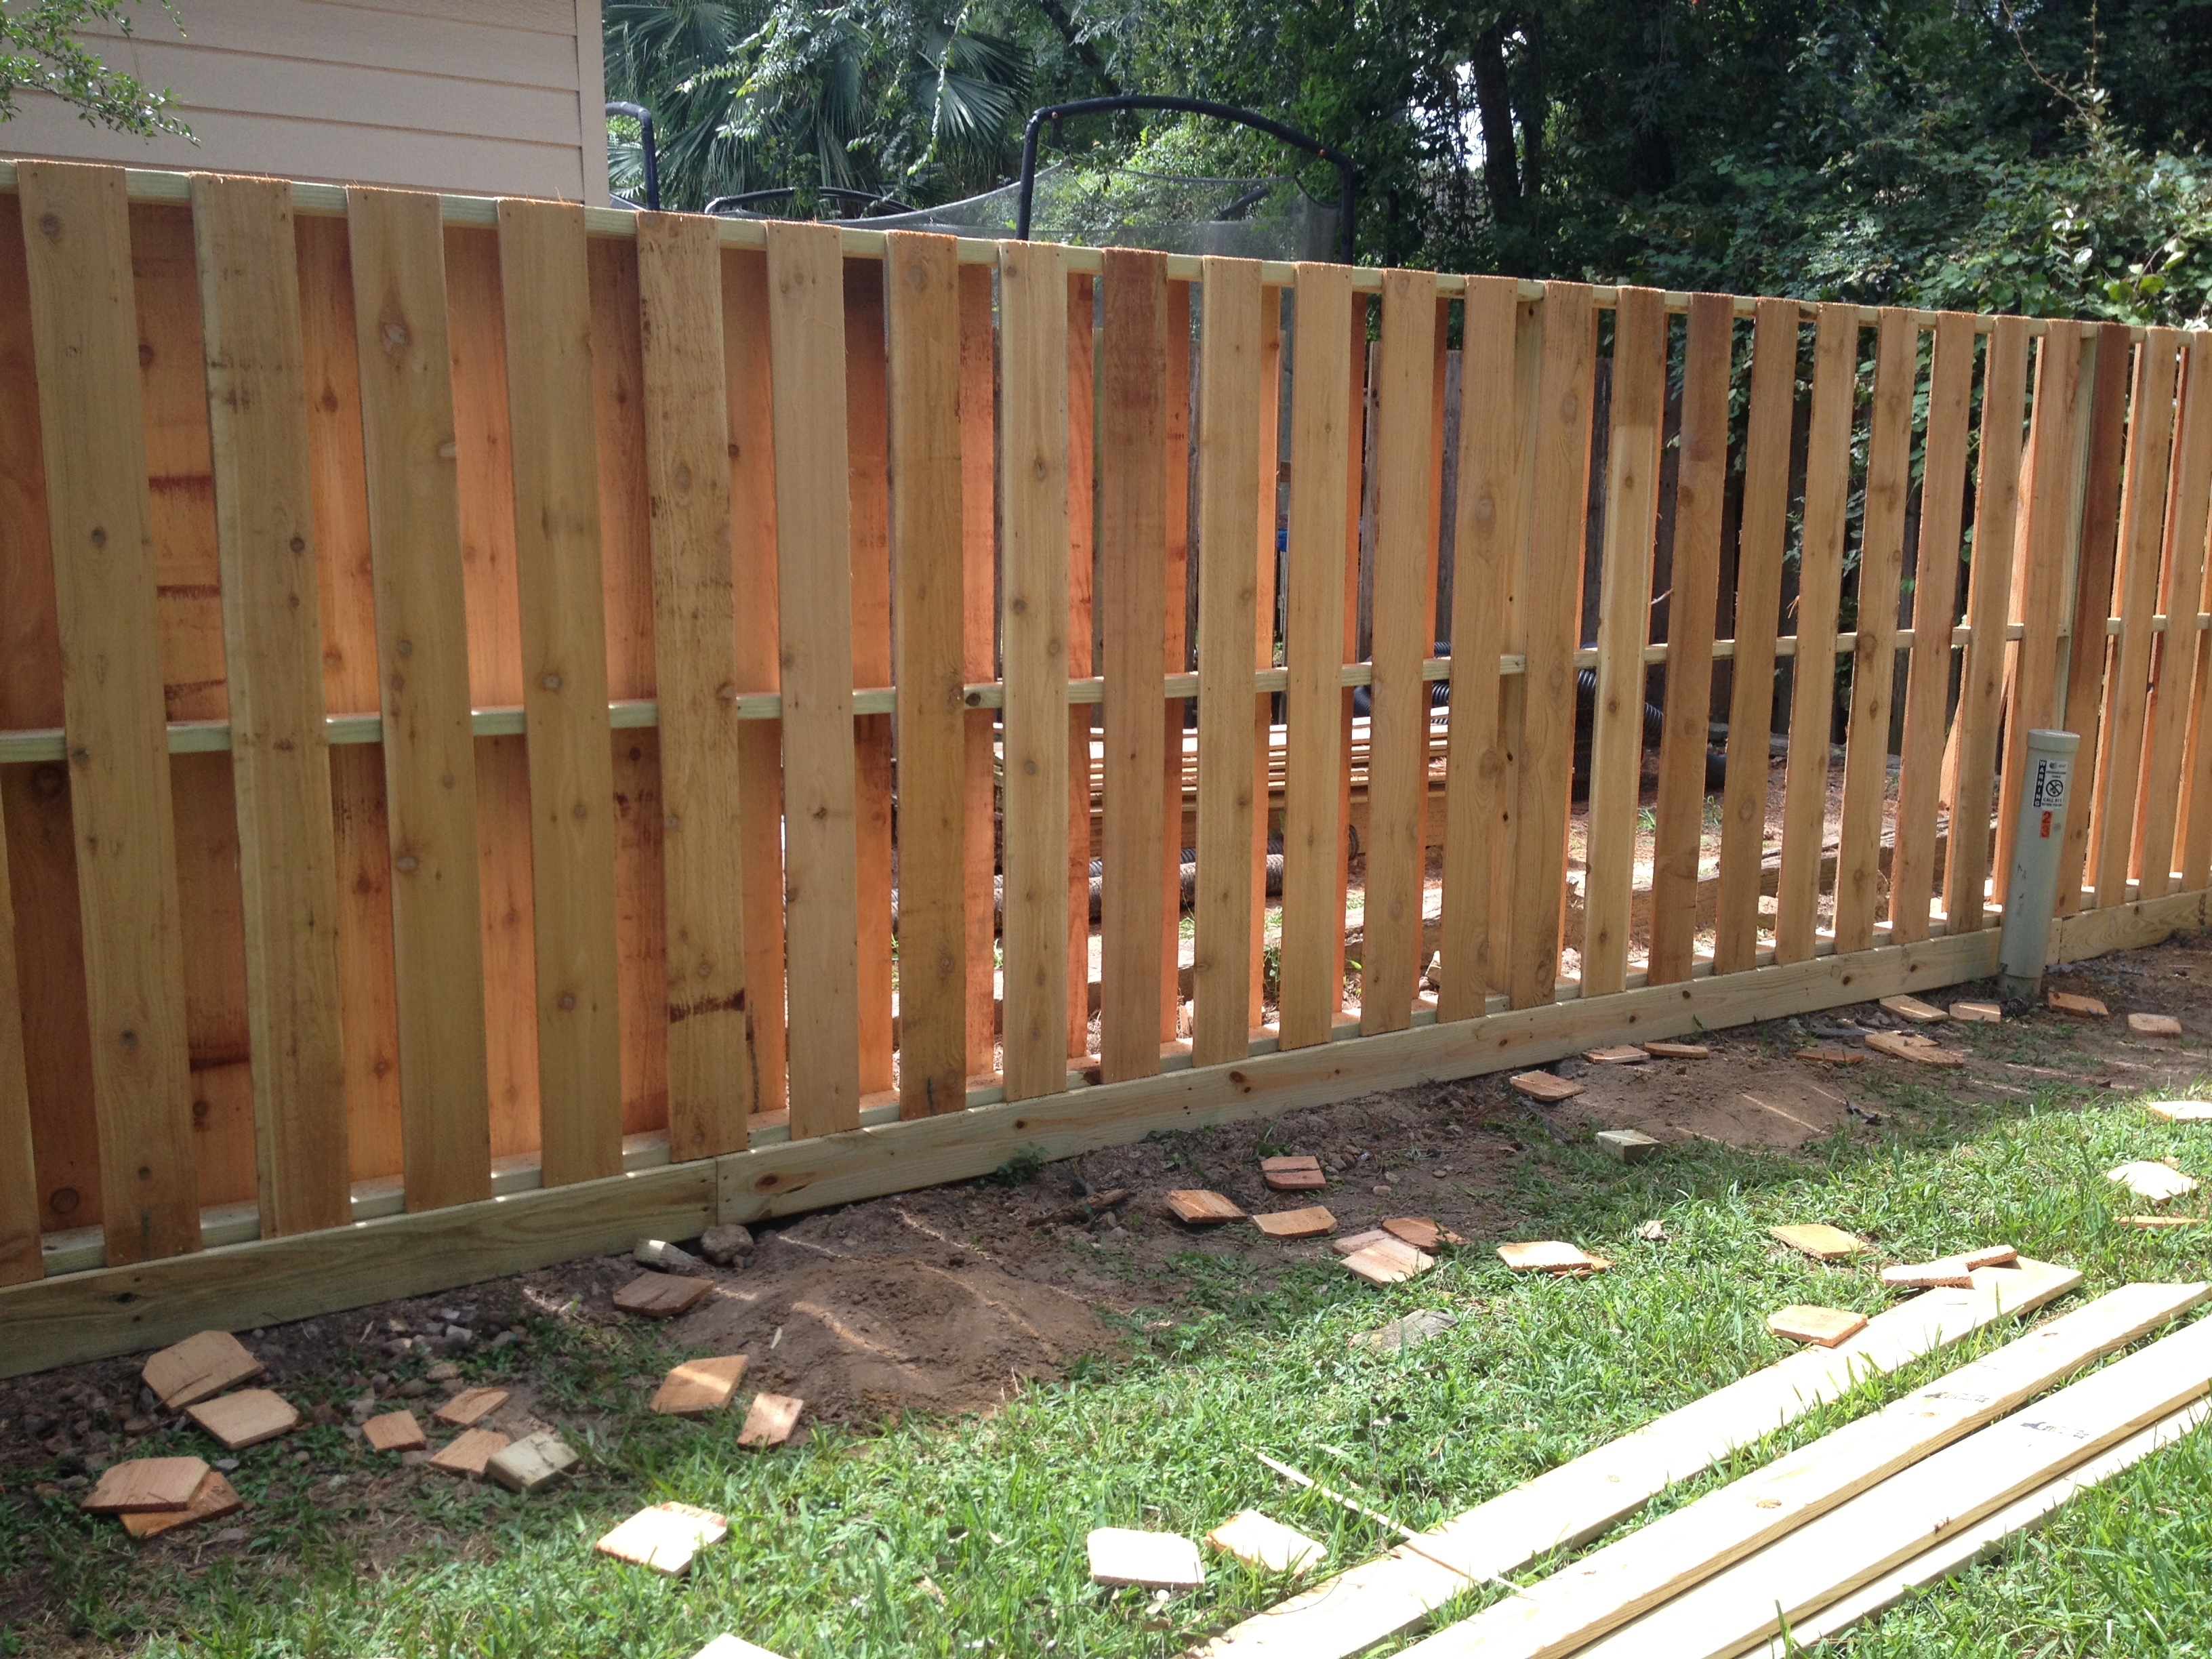 Wooden Fences 360 Fence pany